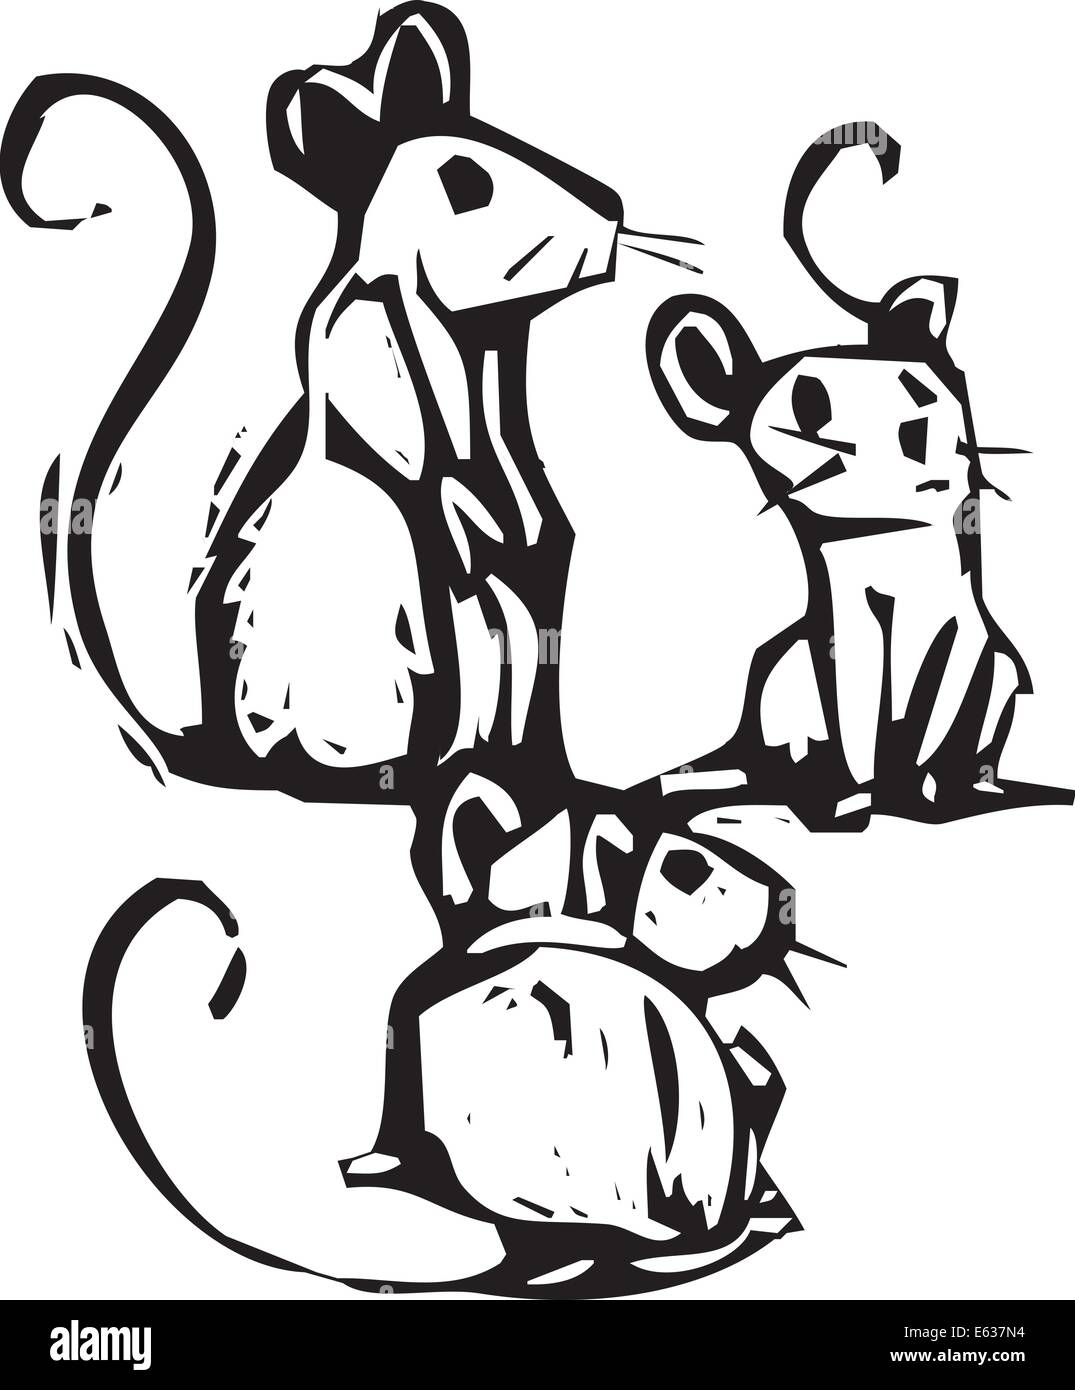 Three mice sitting together listening for something. - Stock Vector